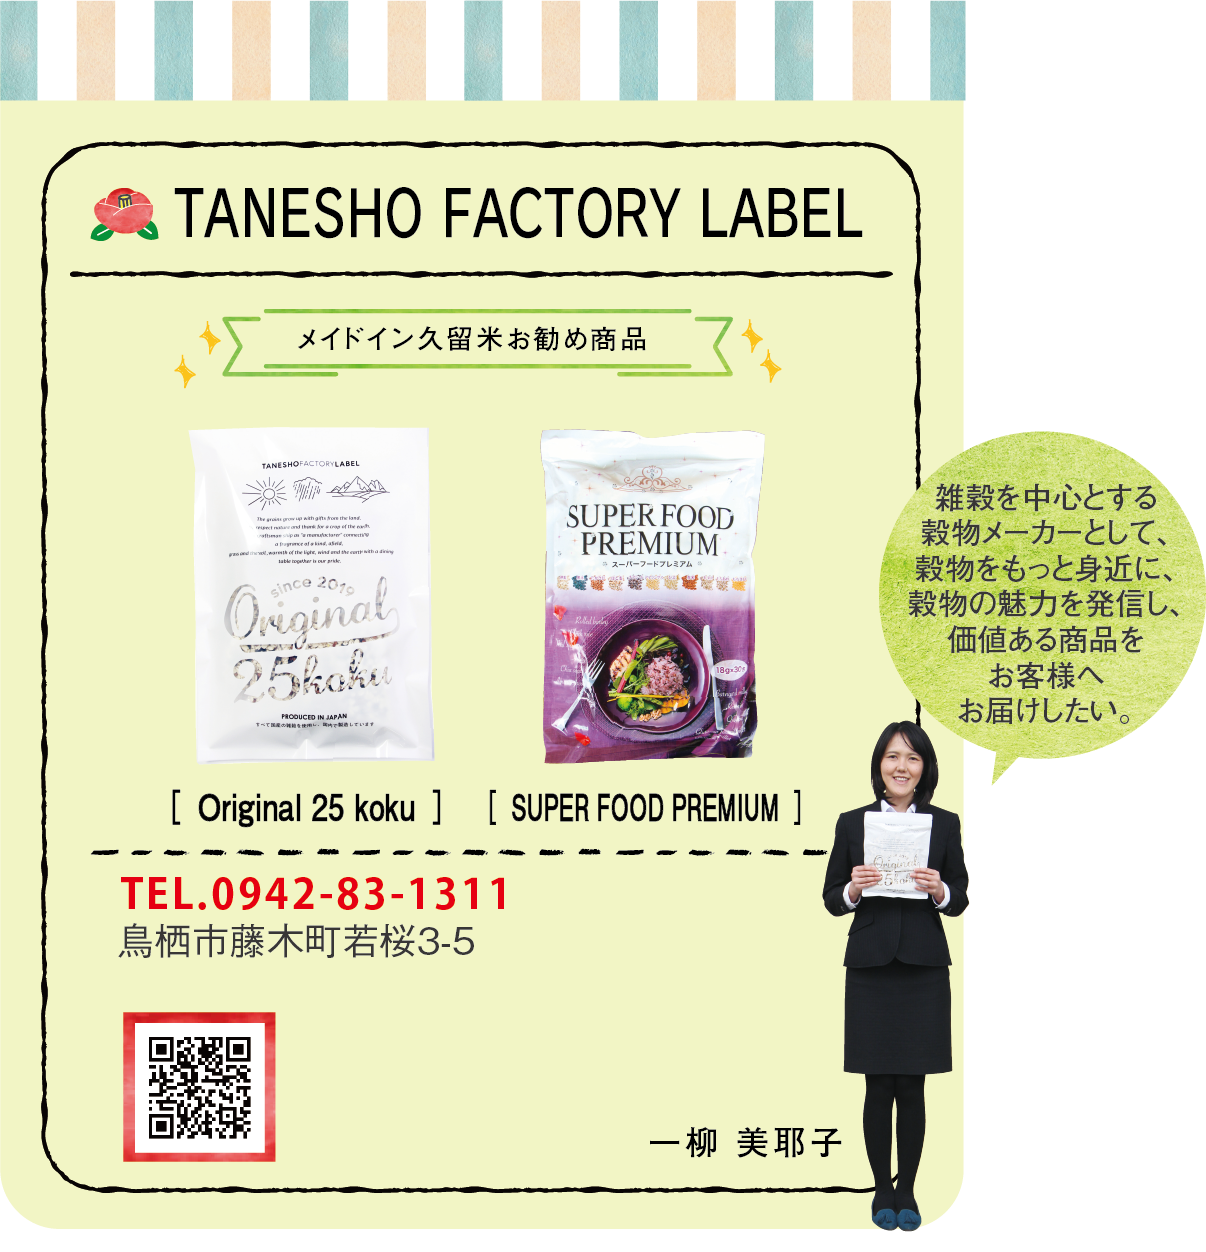 TANESHO FACTORY LABEL